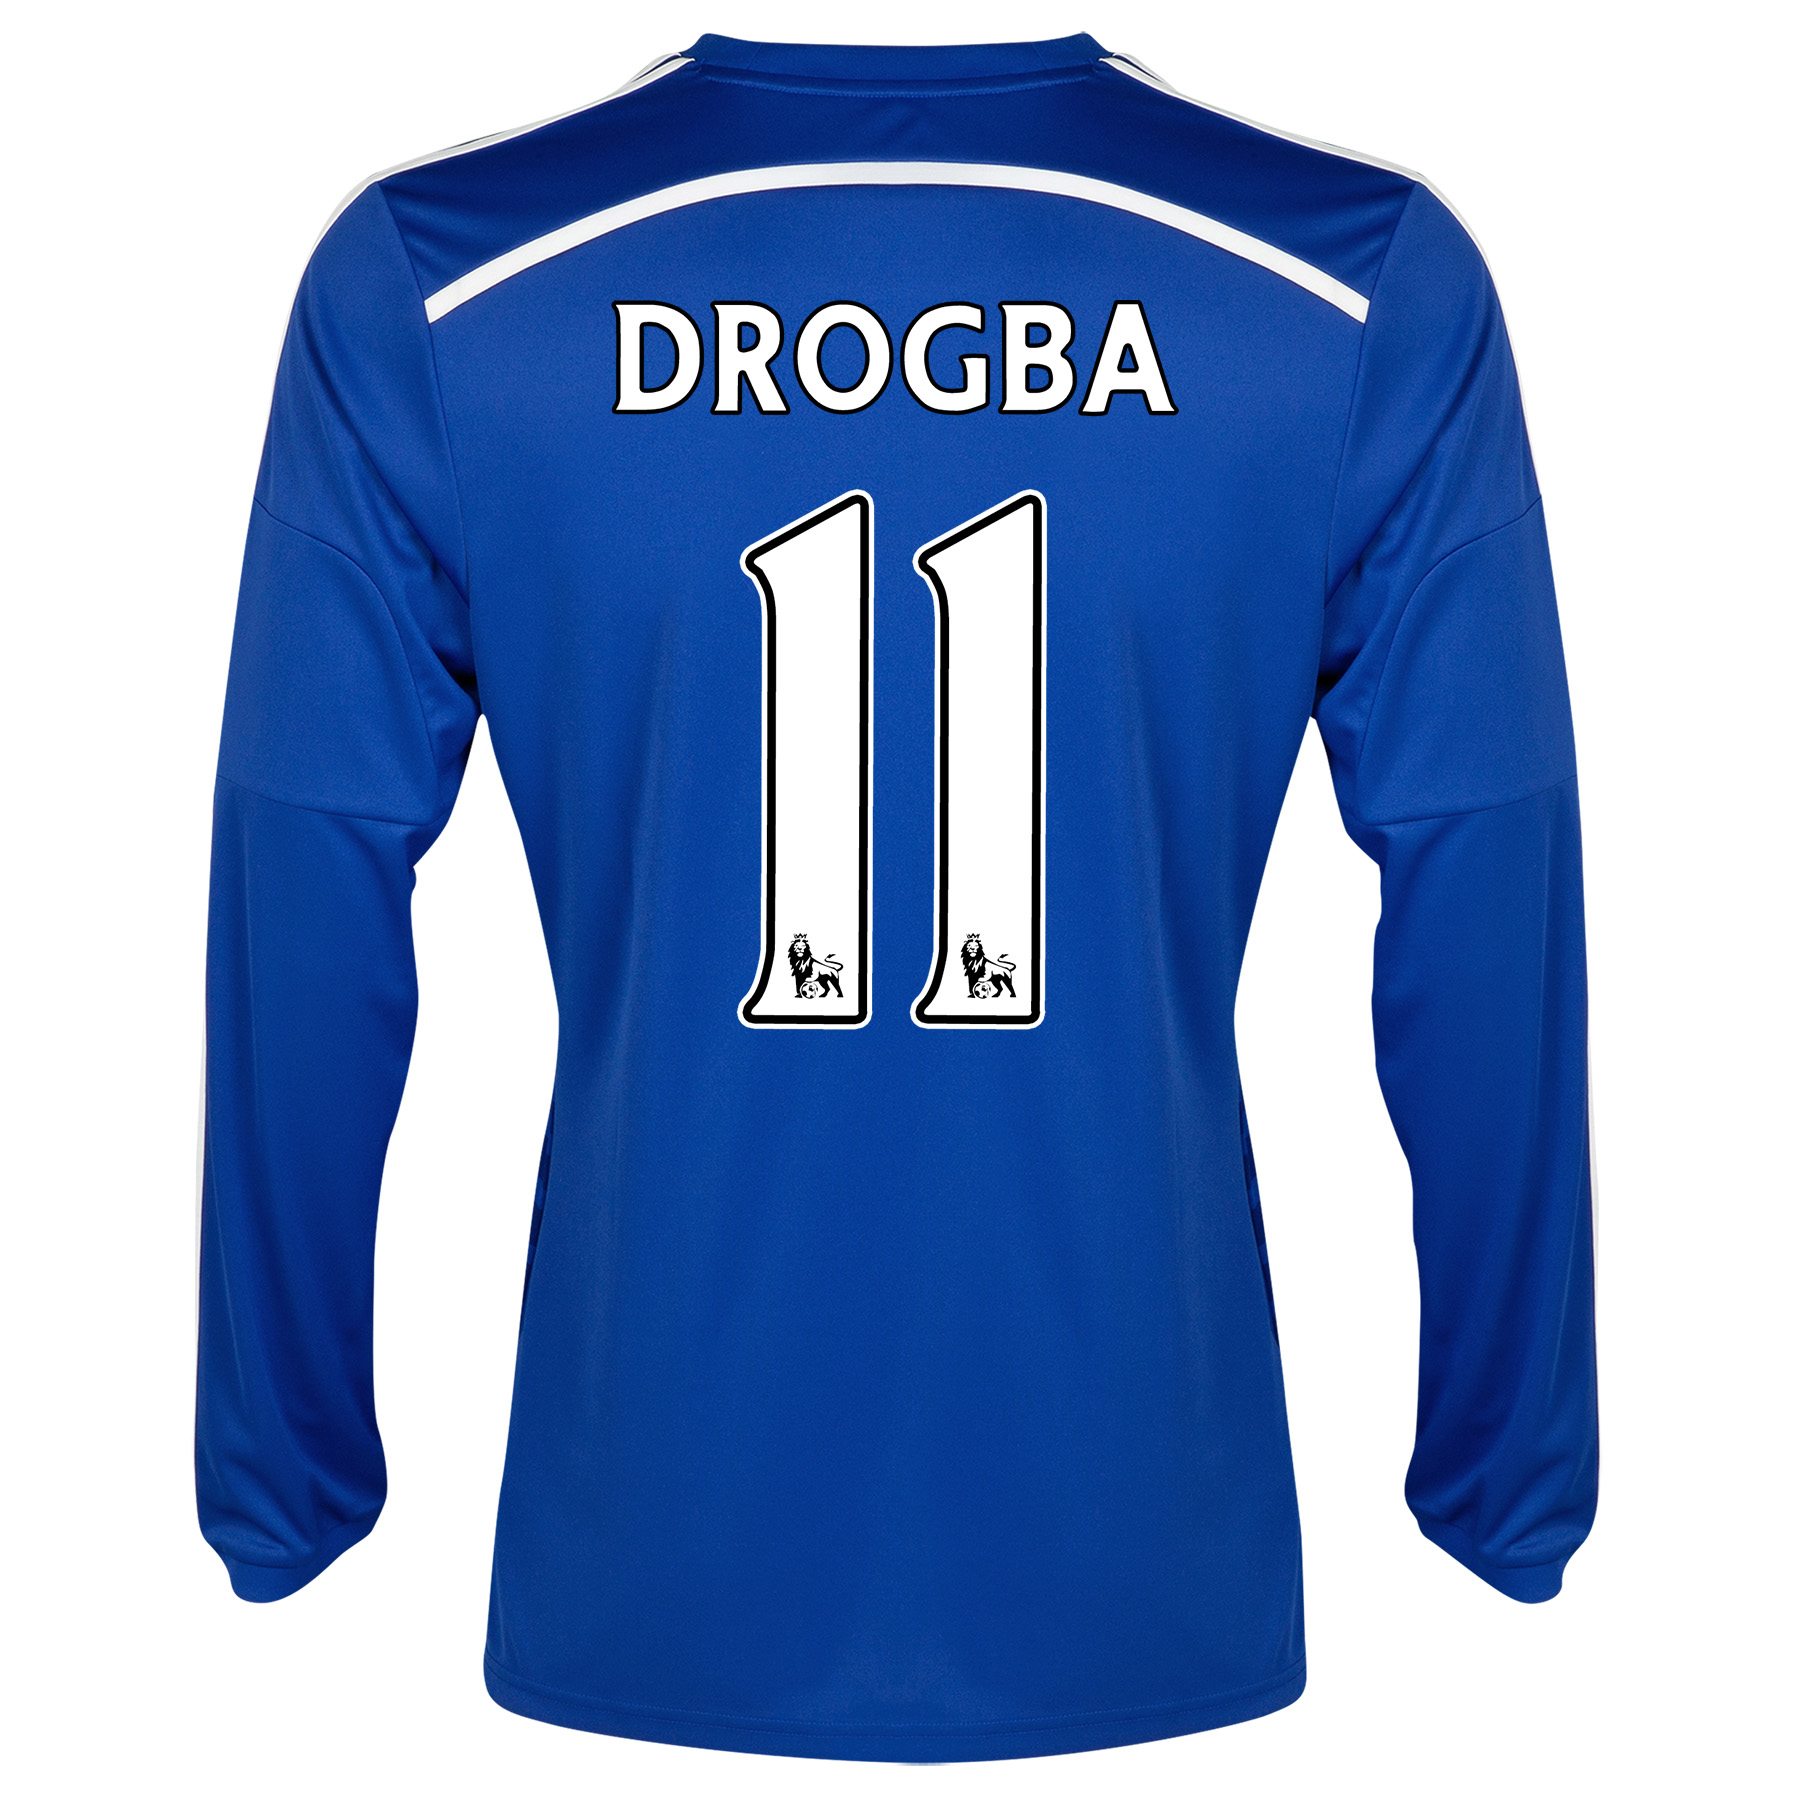 Chelsea Home Shirt 2014/15 - Long Sleeve with Drogba 15 printing